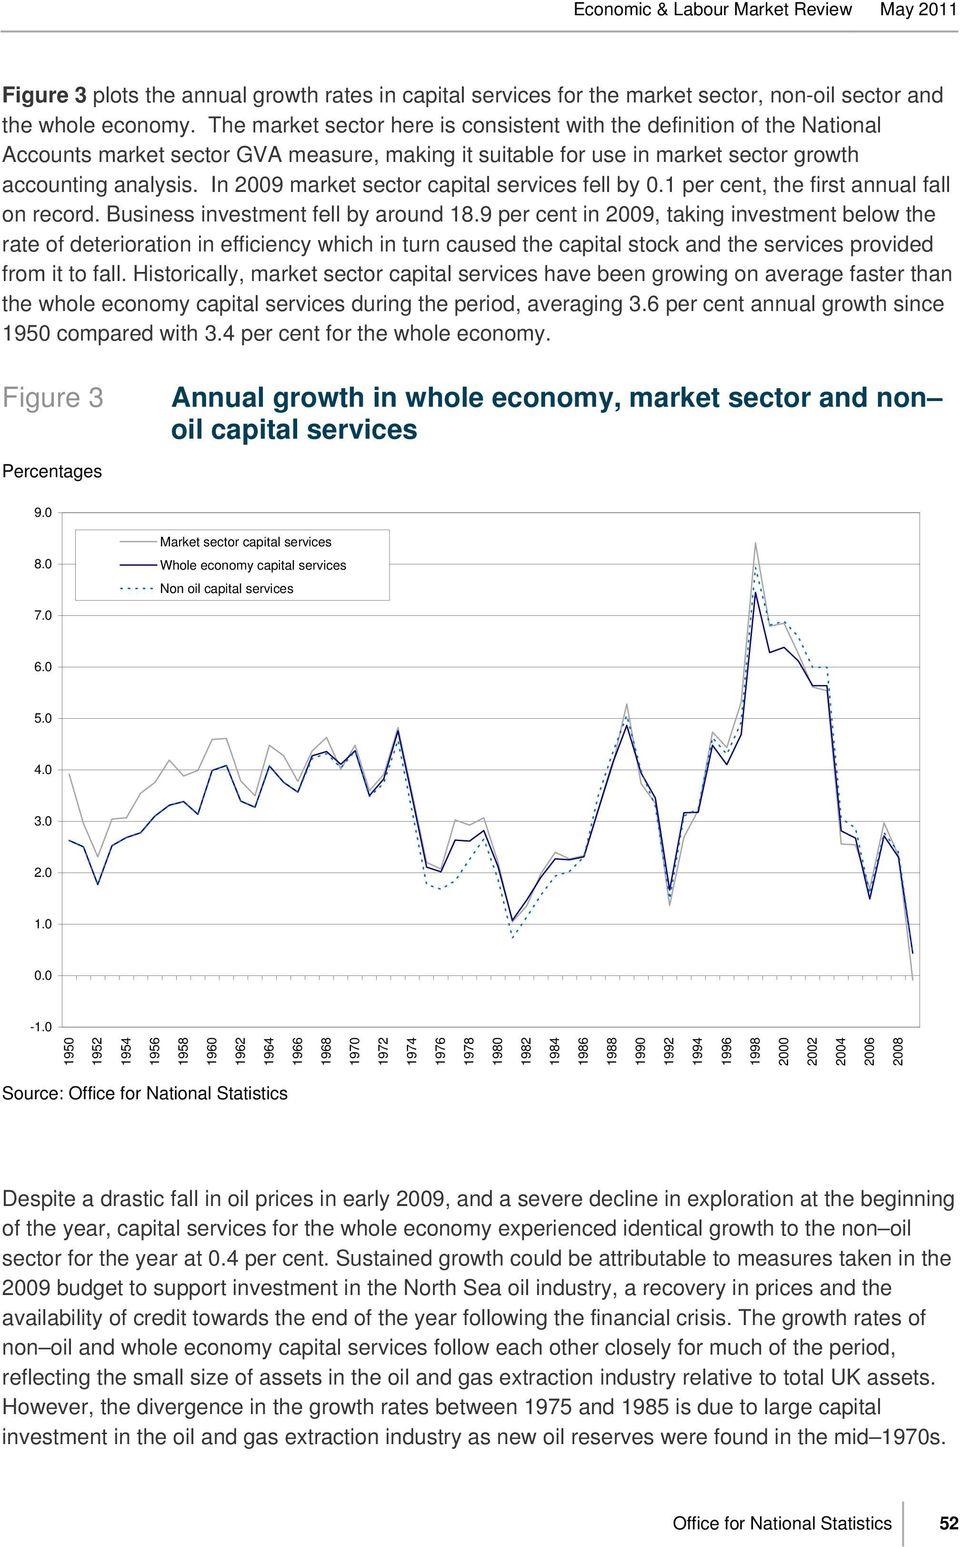 In 2009 market sector capital services fell by 0.1 per cent, the first annual fall on record. Business investment fell by around 18.